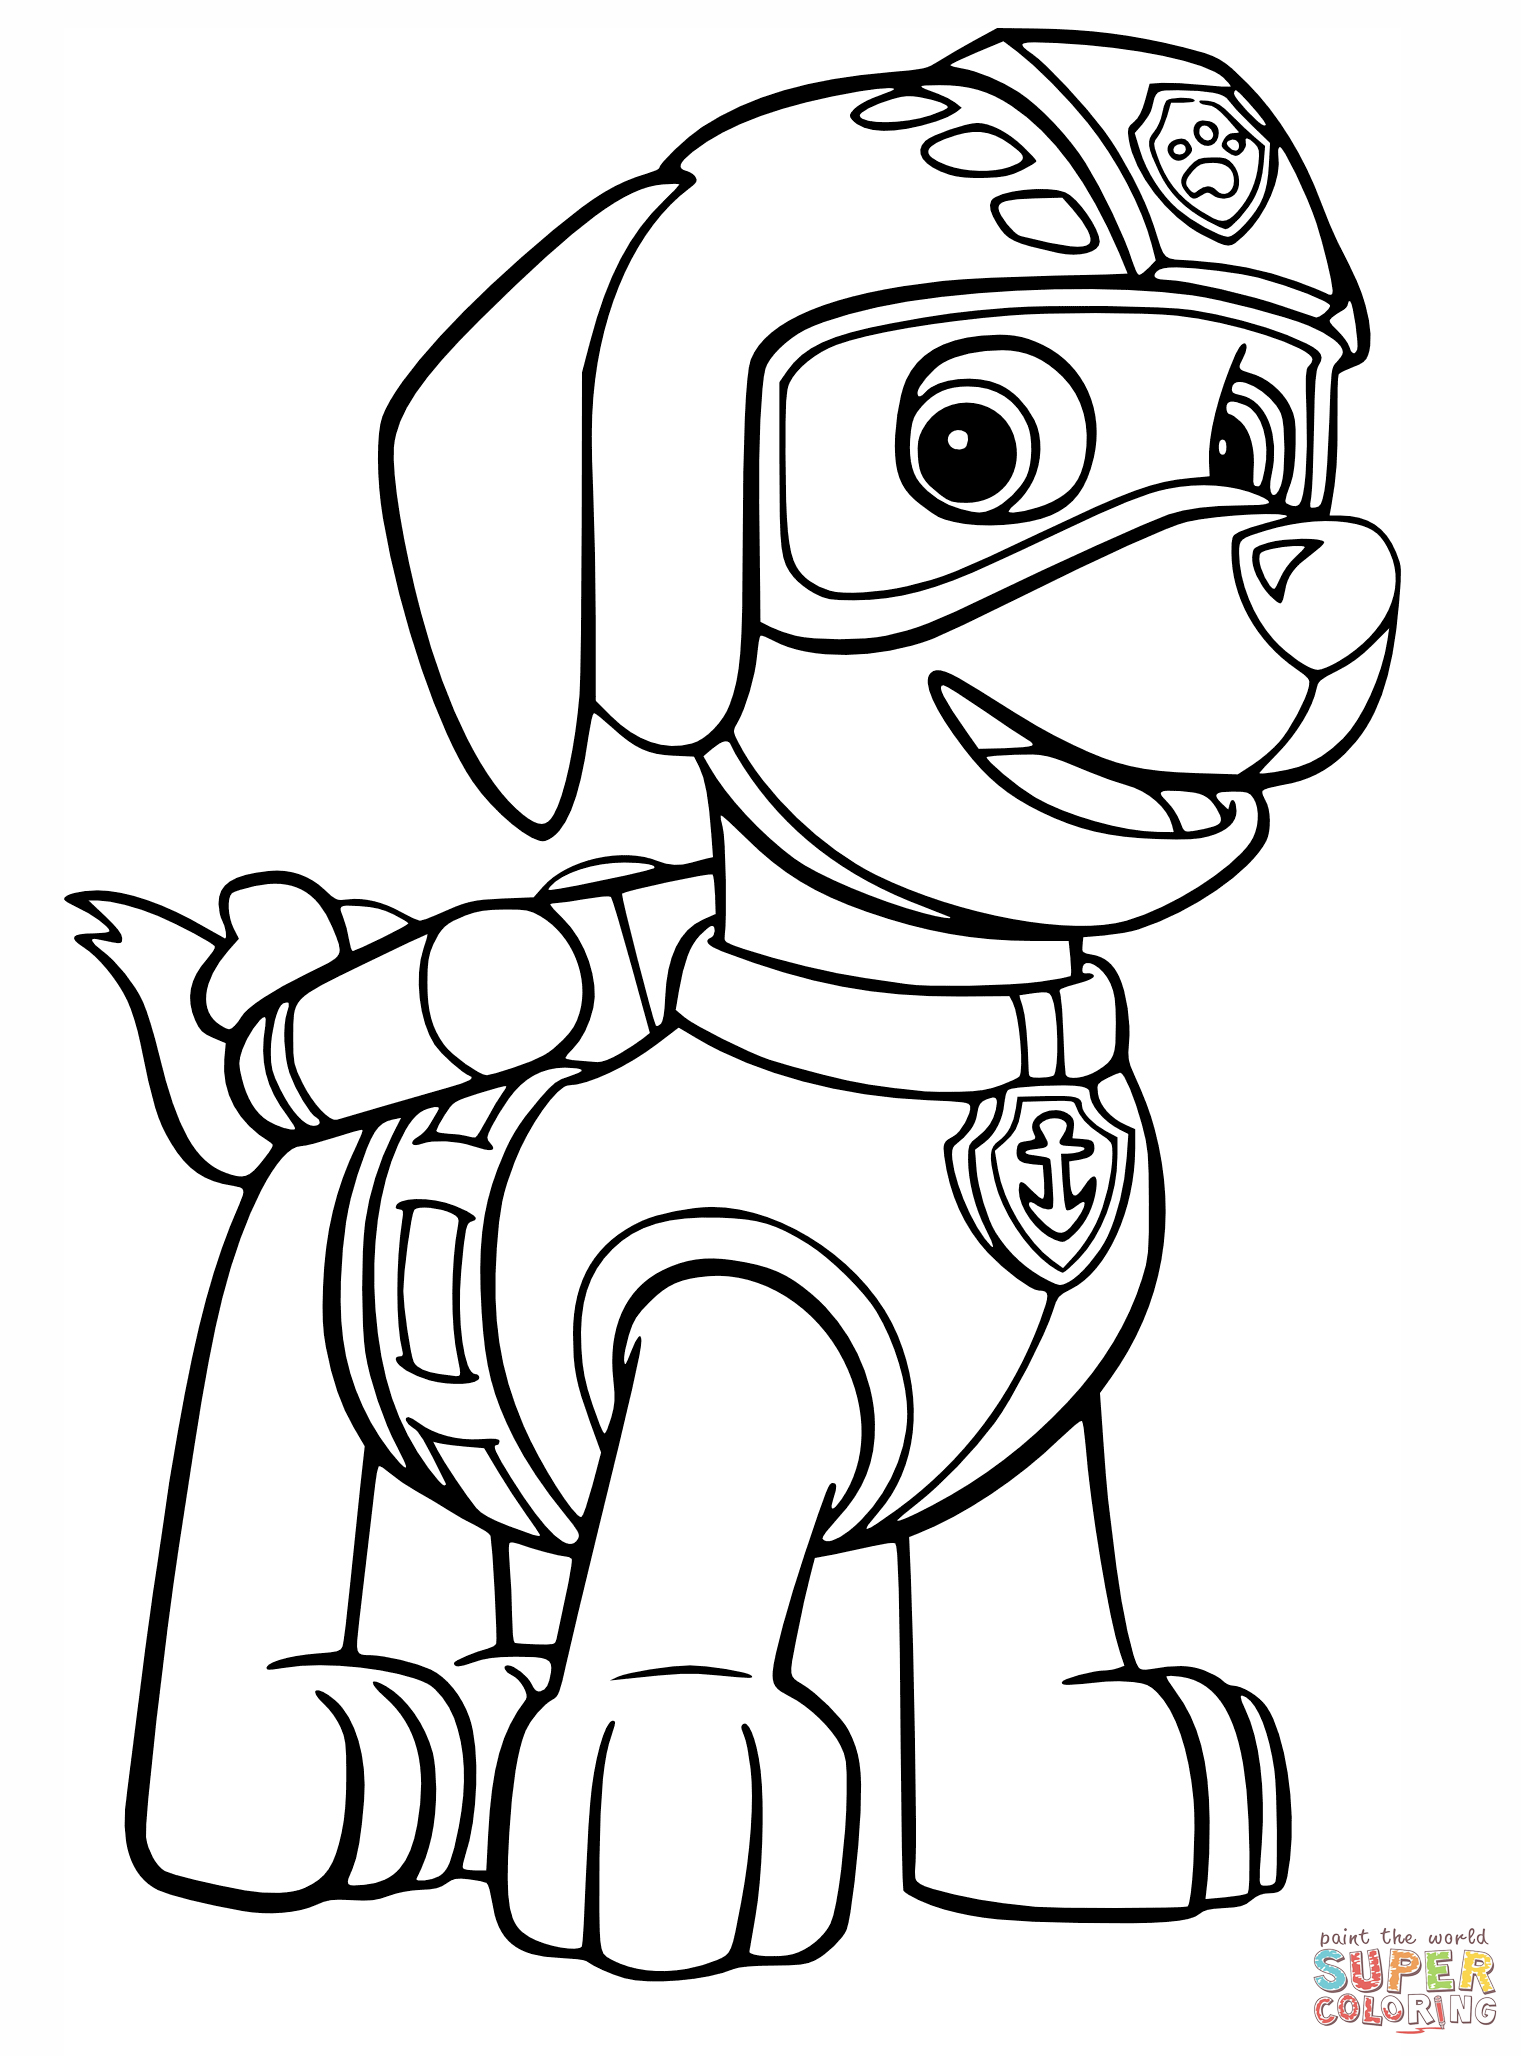 Paw Patrol Tundra Coloring Pages : Paw patrol coloring page home